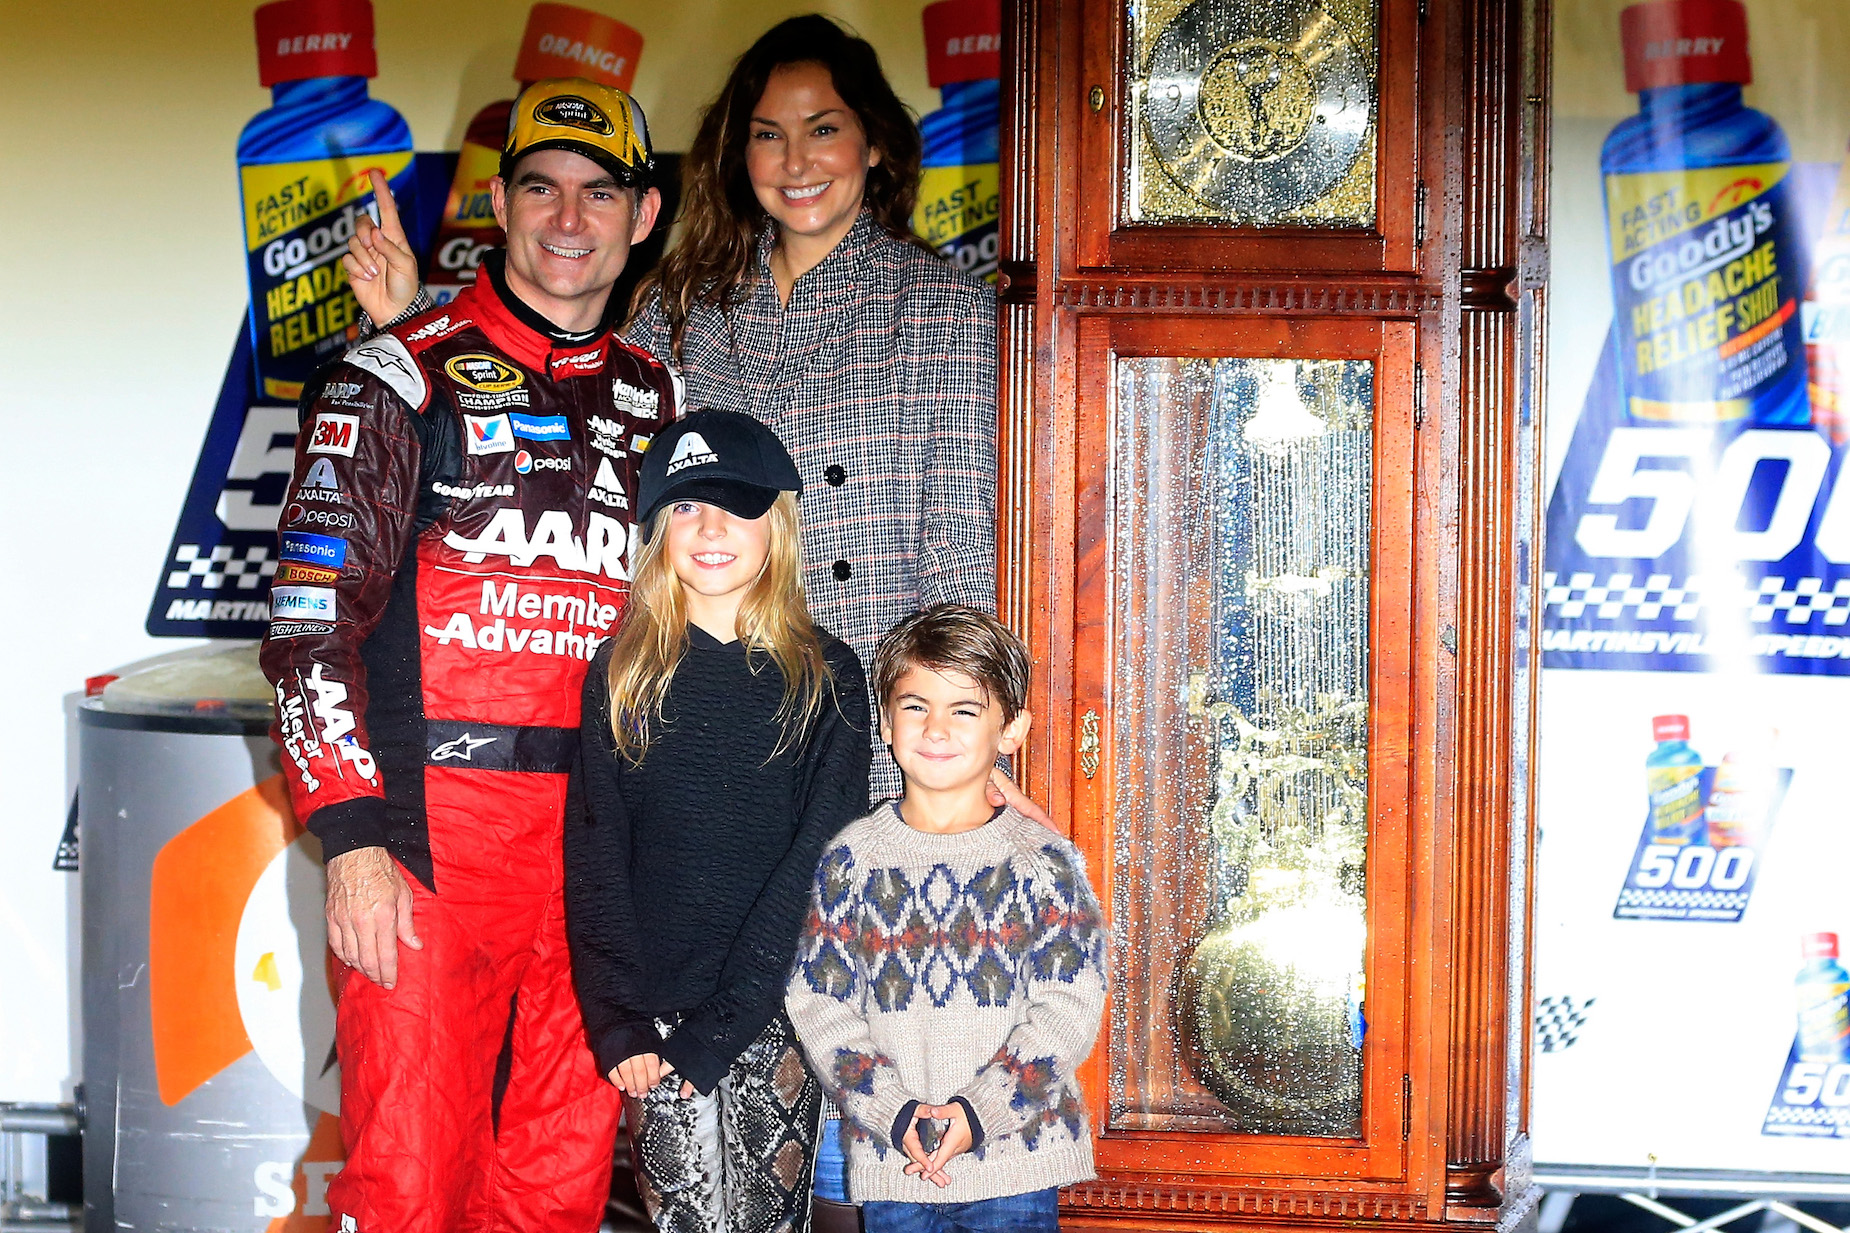 While Jeff Gordon had a long and decorated NASCAR career, he retired before injuries ruined his quality of life.